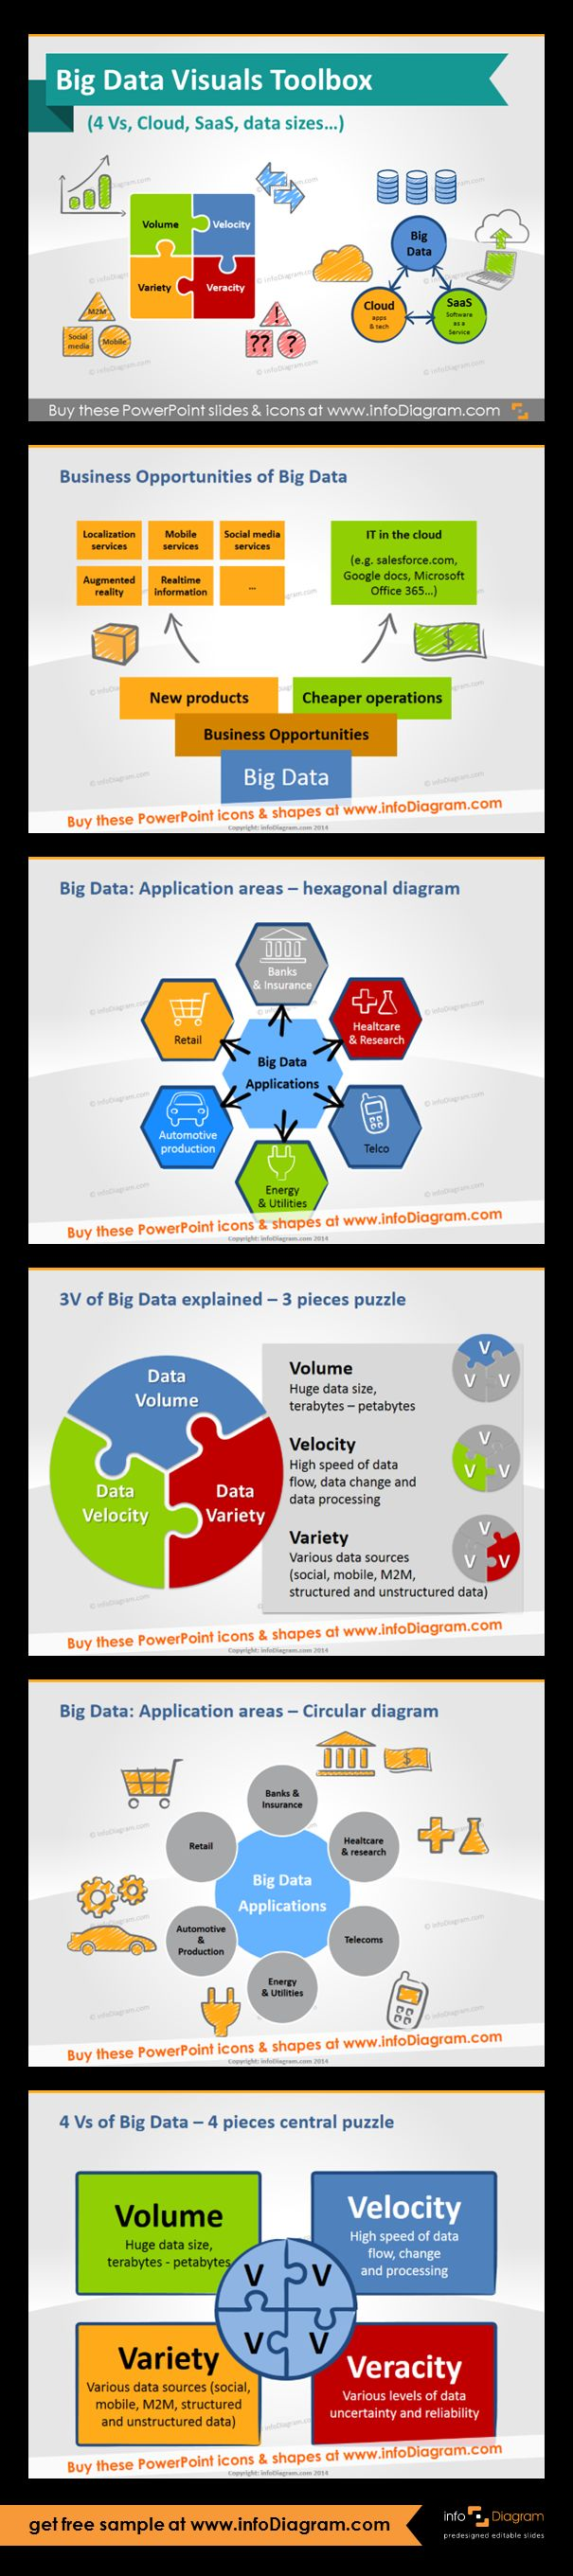 Big Data visuals toolbox for ppt - diagrams and icons. Fully editable in PowerPoint set of vector shapes fully editable by using built-in PowerPoint tools. Big Data New Business Opportunities: New products (Localization, Mobile, Social Media products ...)  Cheaper operations (SaaS applications in the cloud e.g. Salesforce, Google docs, Microsoft 365 ...). Application areas in hexagonal and circular diagrams. Gartner's 3V (Volume, Velocity, Variety) - 3-pieces circle puzzle. Extended 4Vs of…